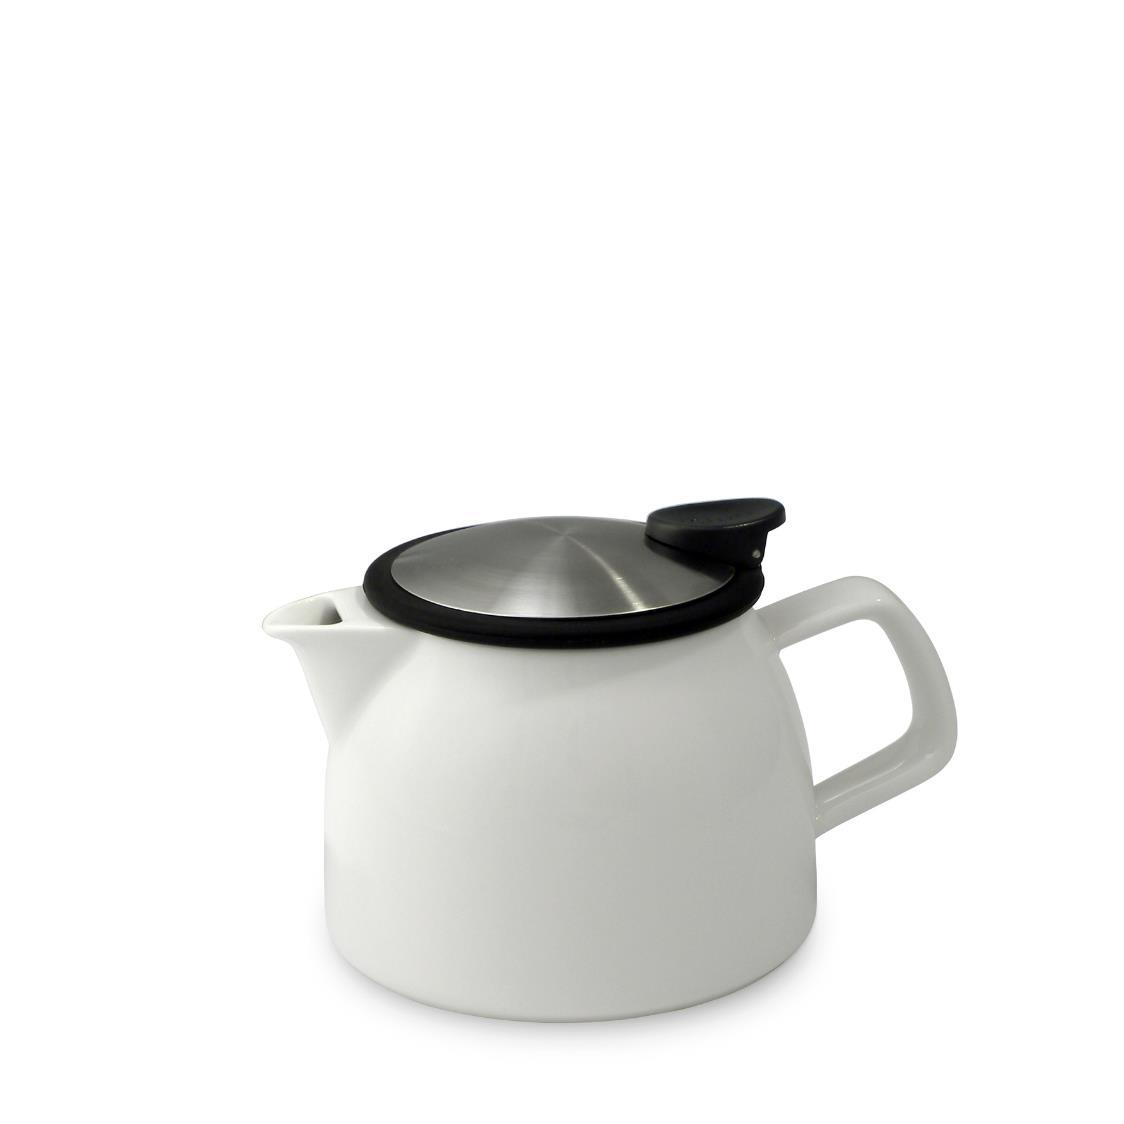 Bell Teapot with Basket Infuser 470ml FL543-WHT